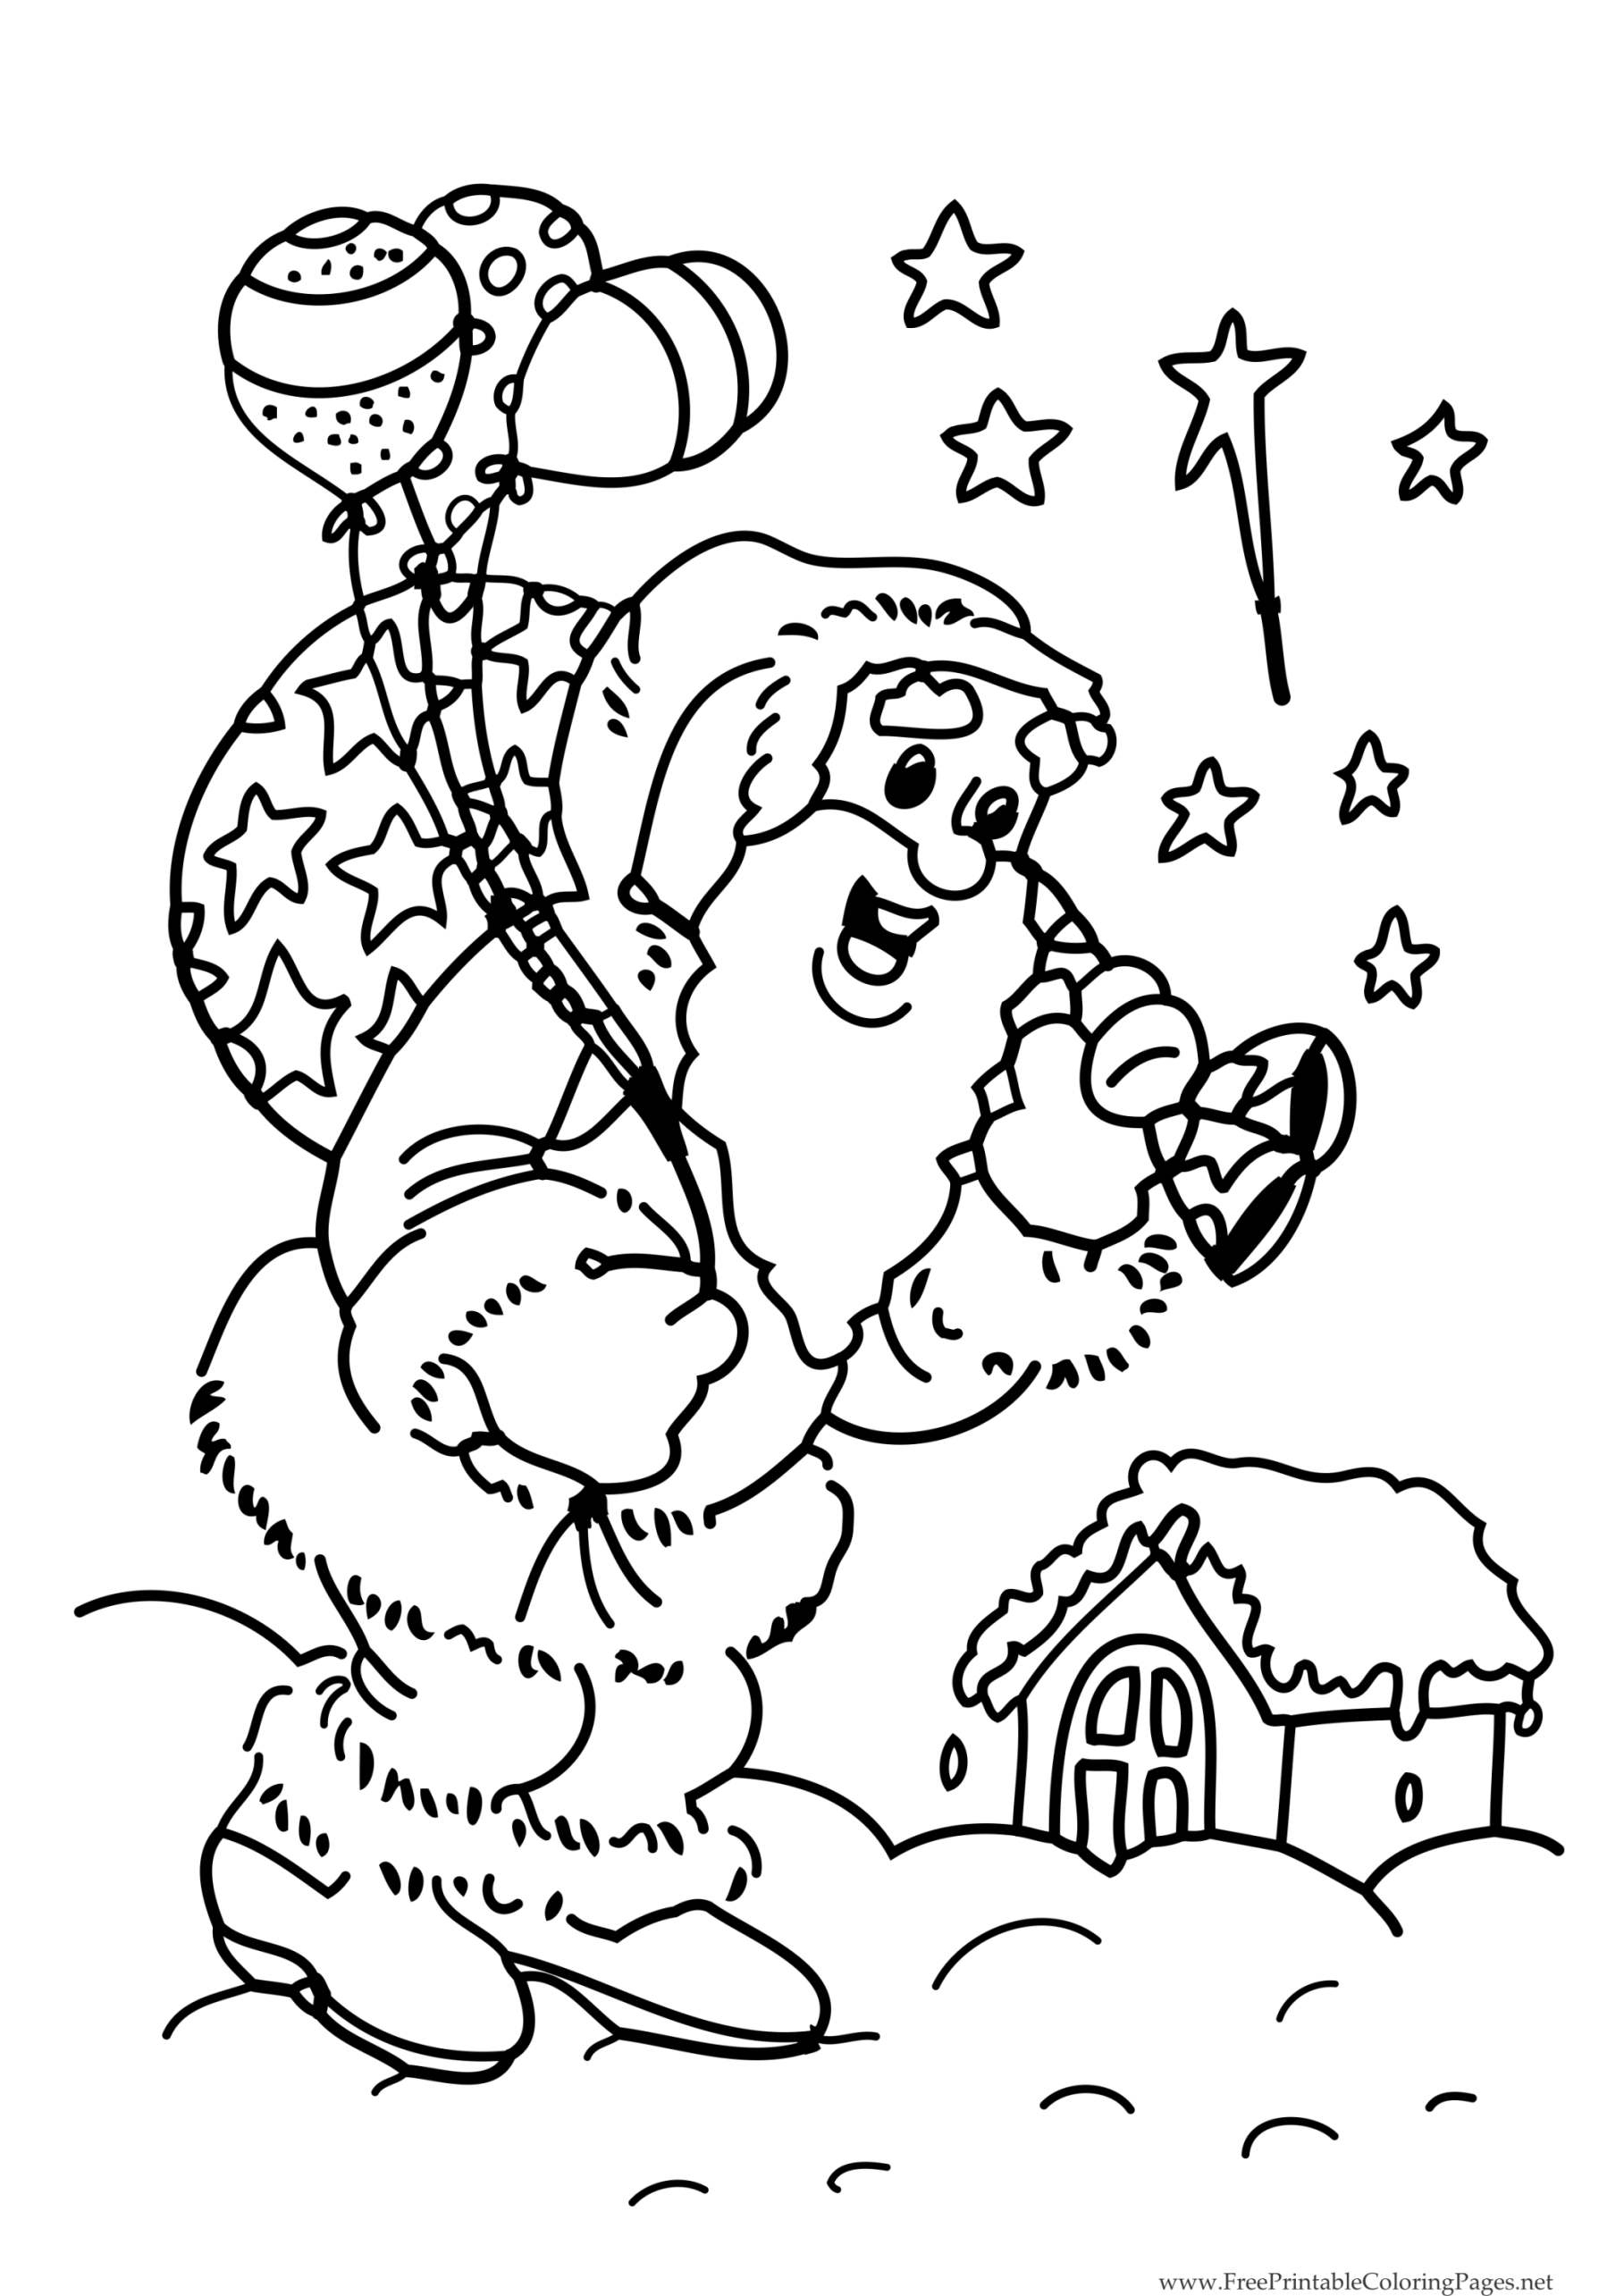 Santa Claus For Kids - Santa Claus Kids Coloring Pages serapportantà Coloriage Cadeau De Noel